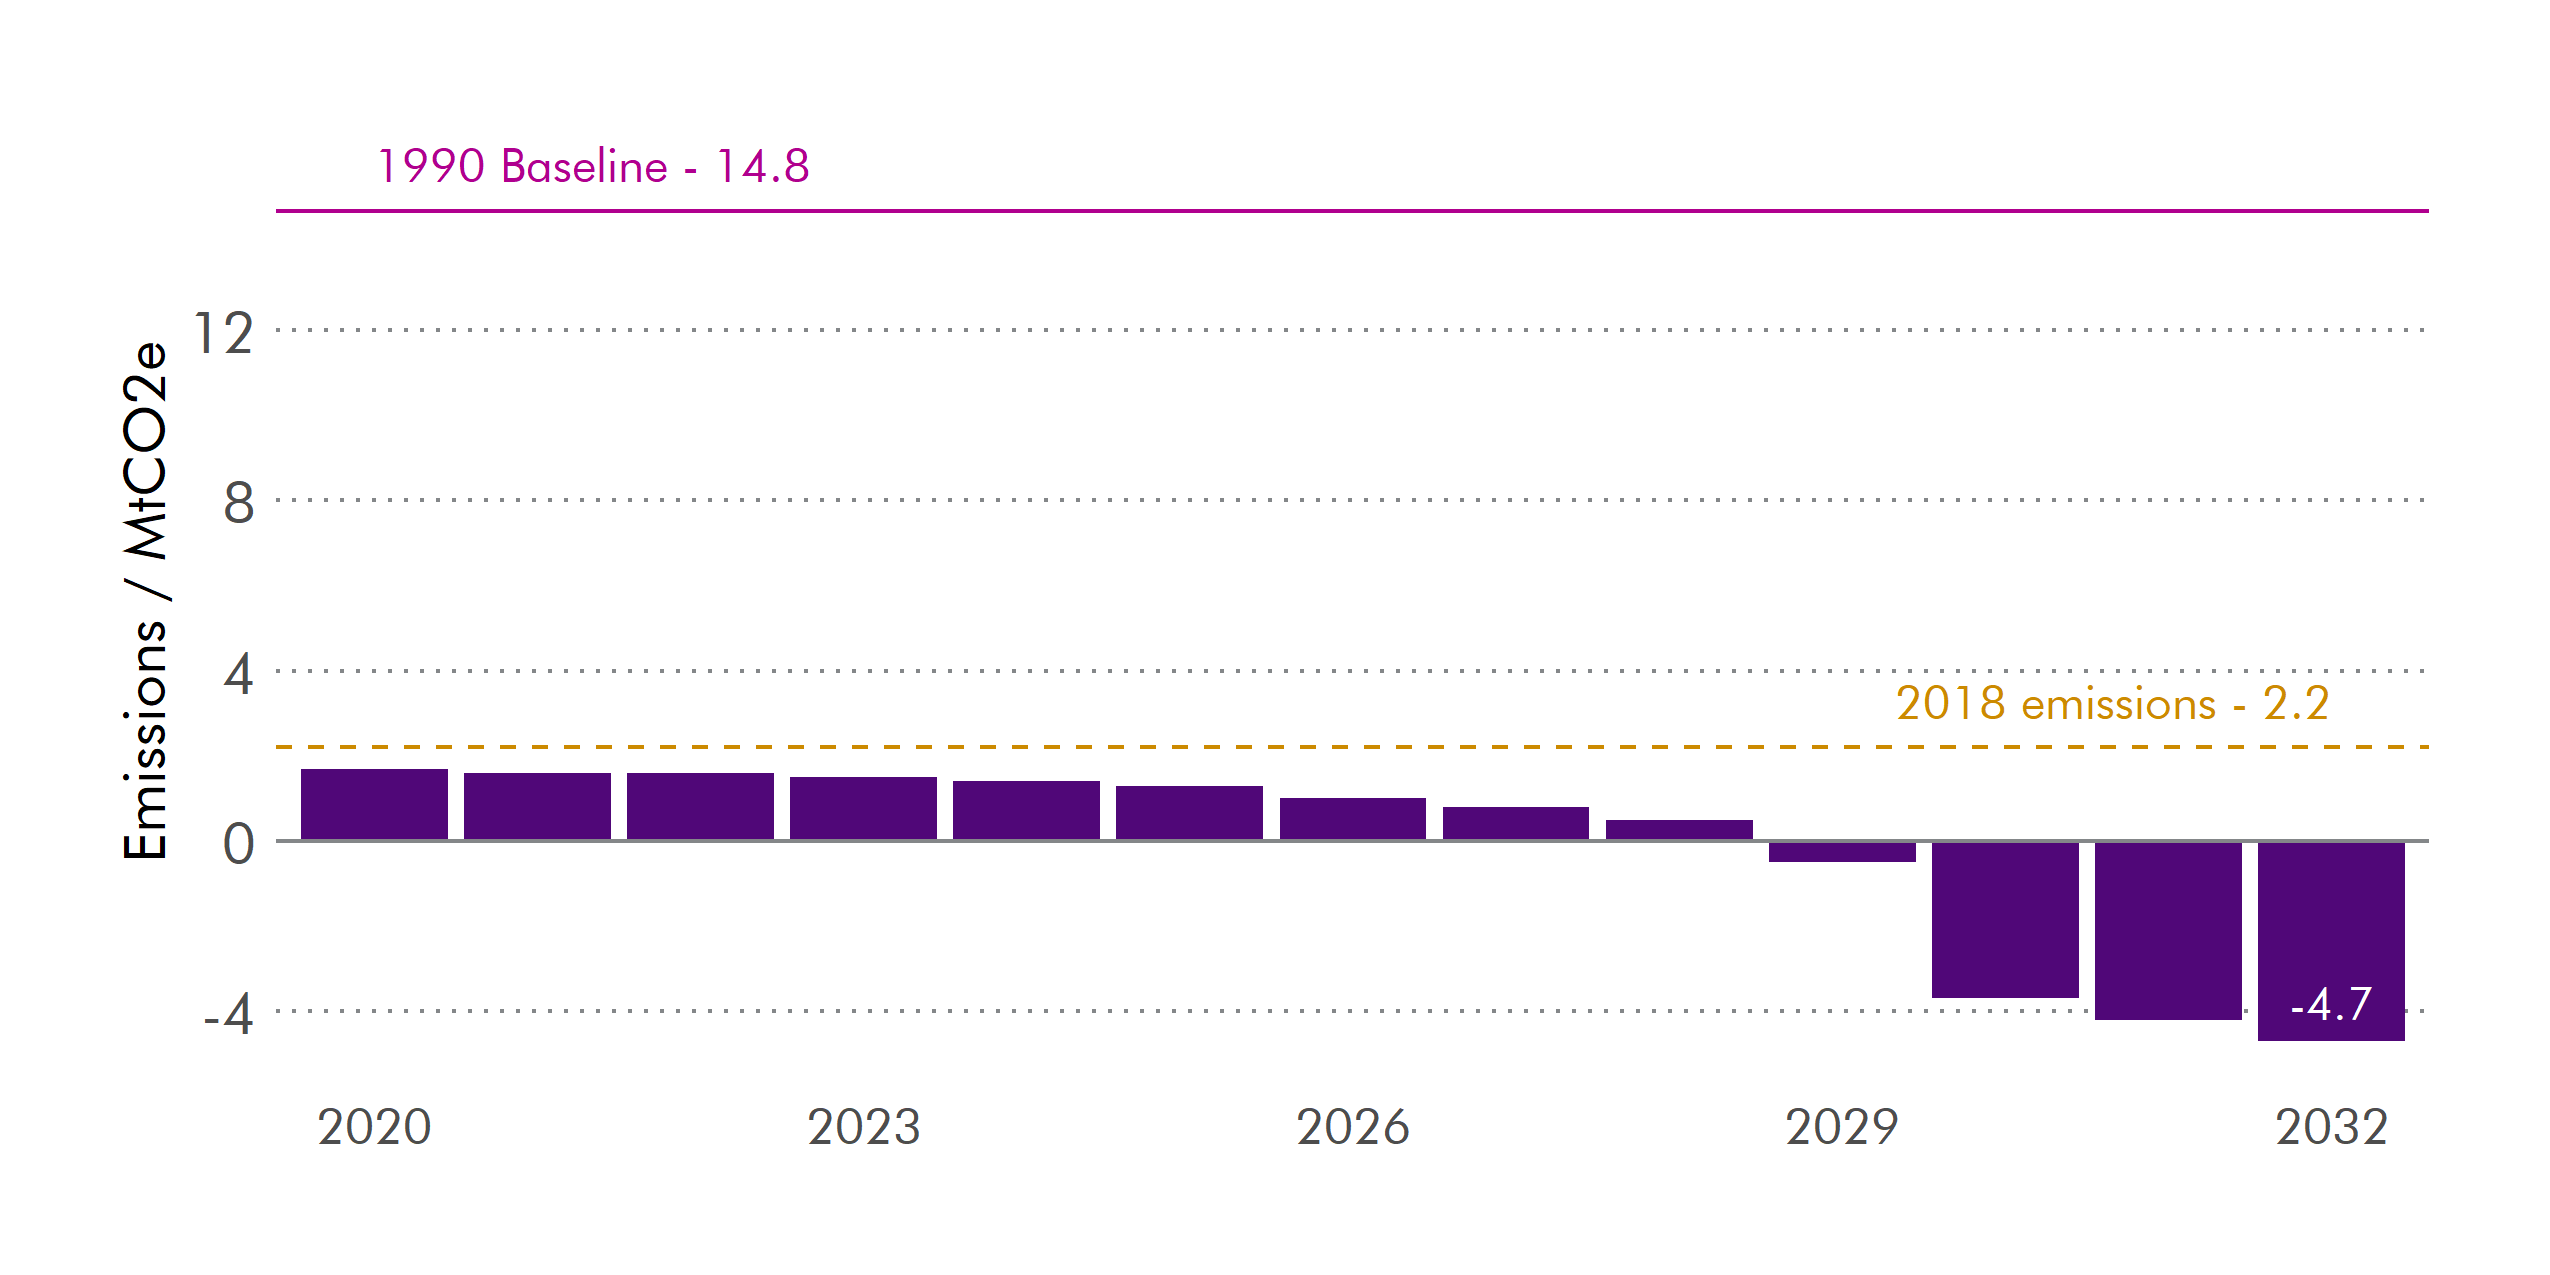 A 376% reduction in emissions out to 2032 is expected (100% excluding NETs).